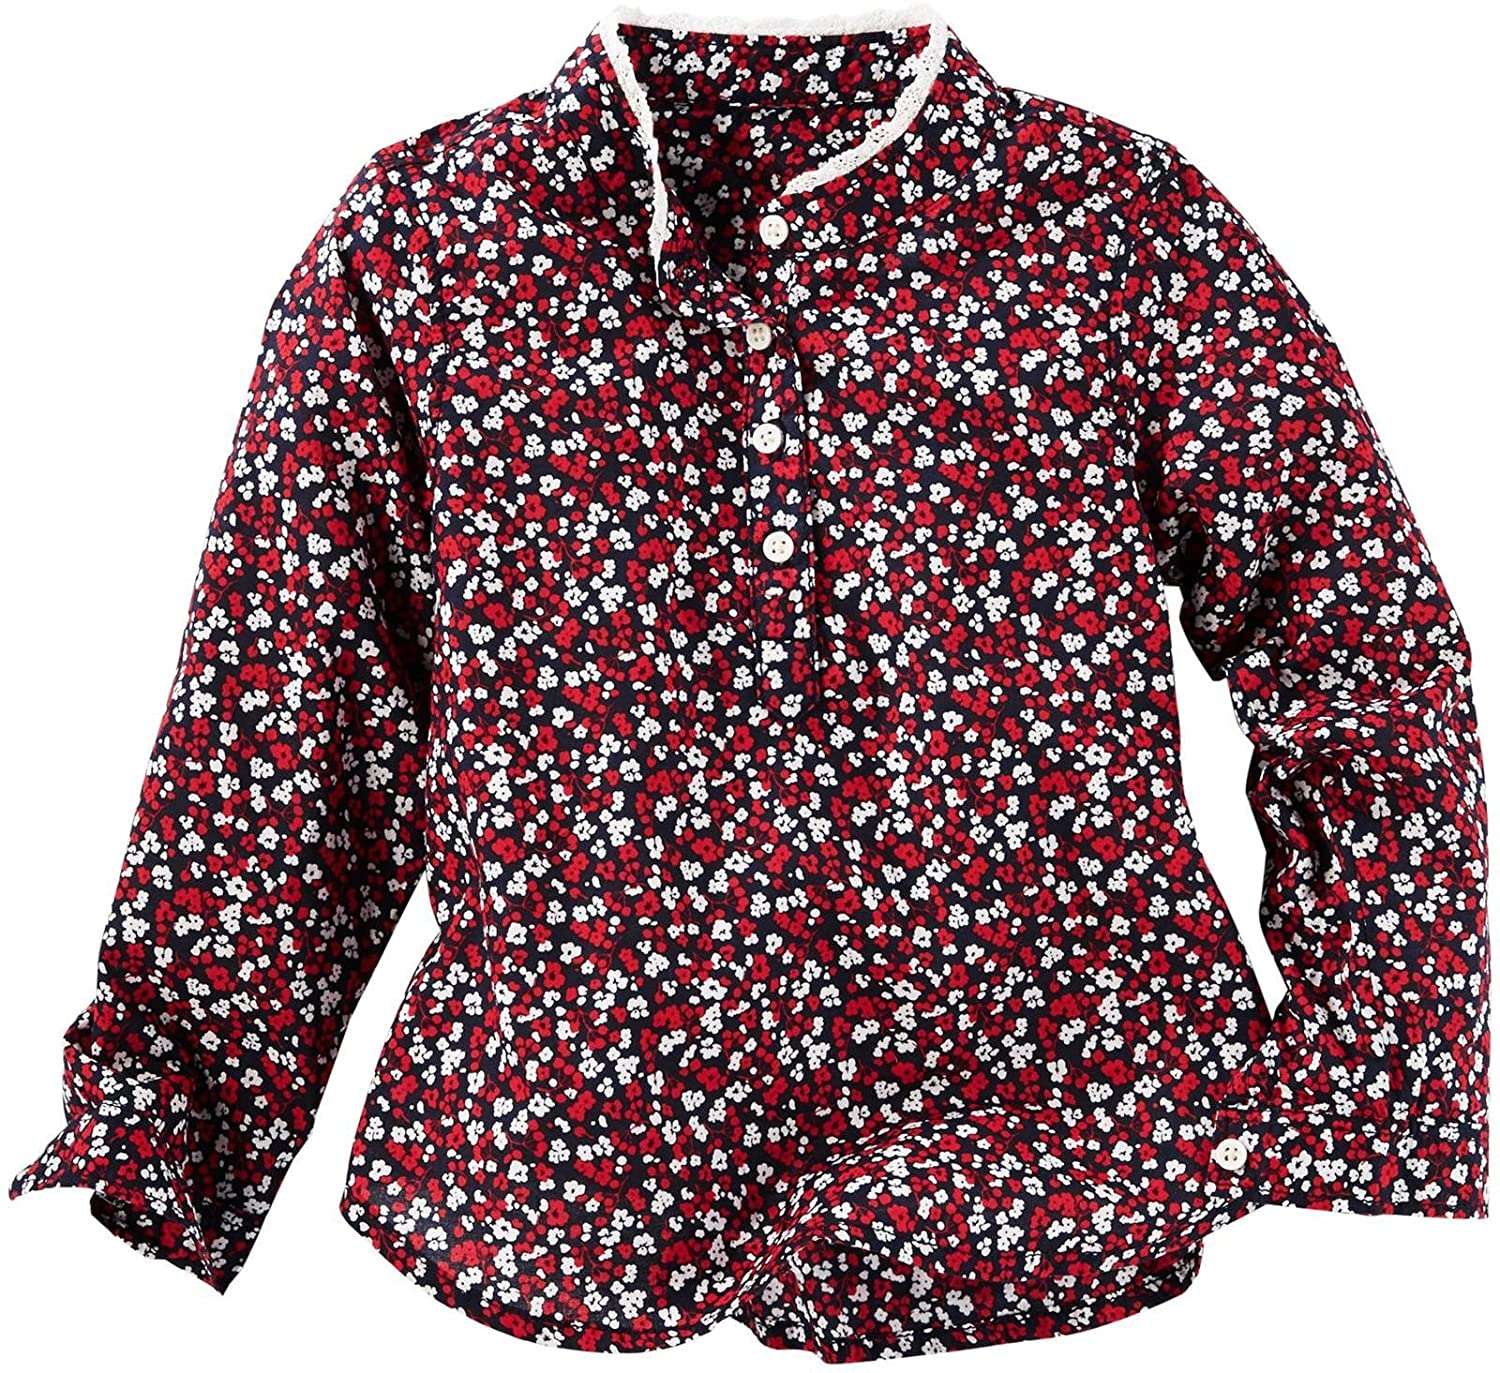 OshKosh B'Gosh Girls' Woven Buttonfront 21412210